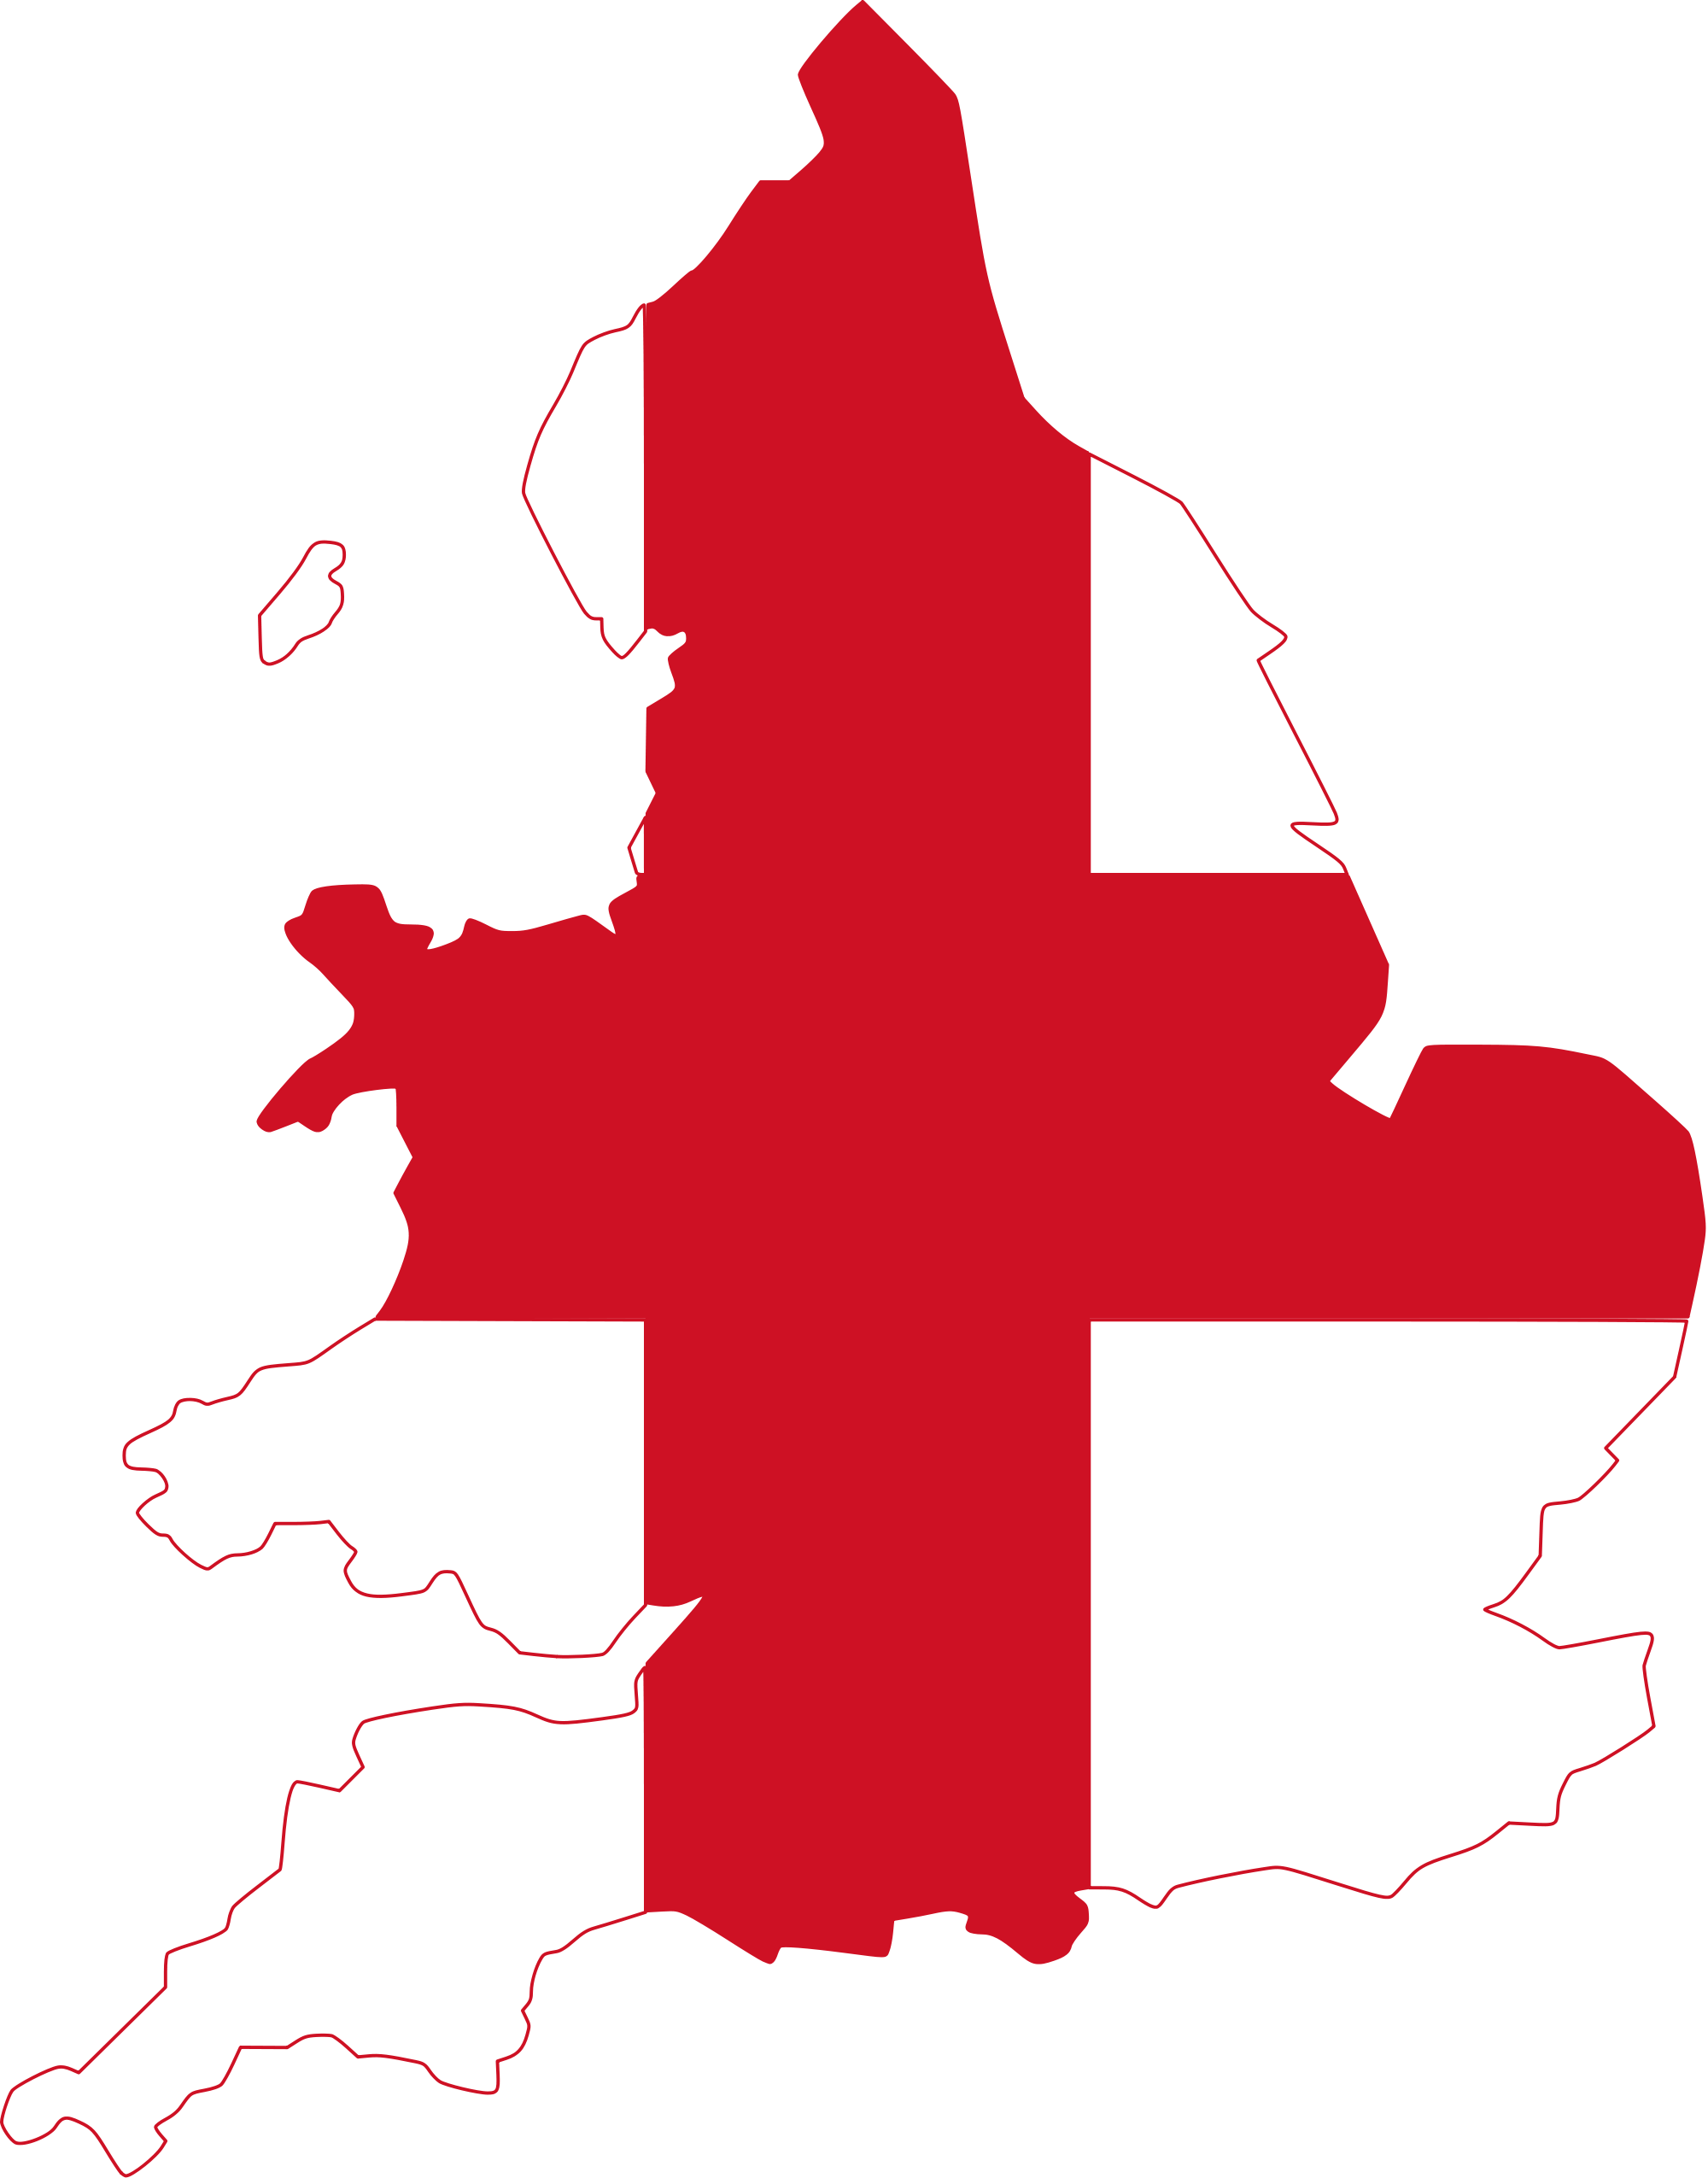 England svg #7, Download drawings